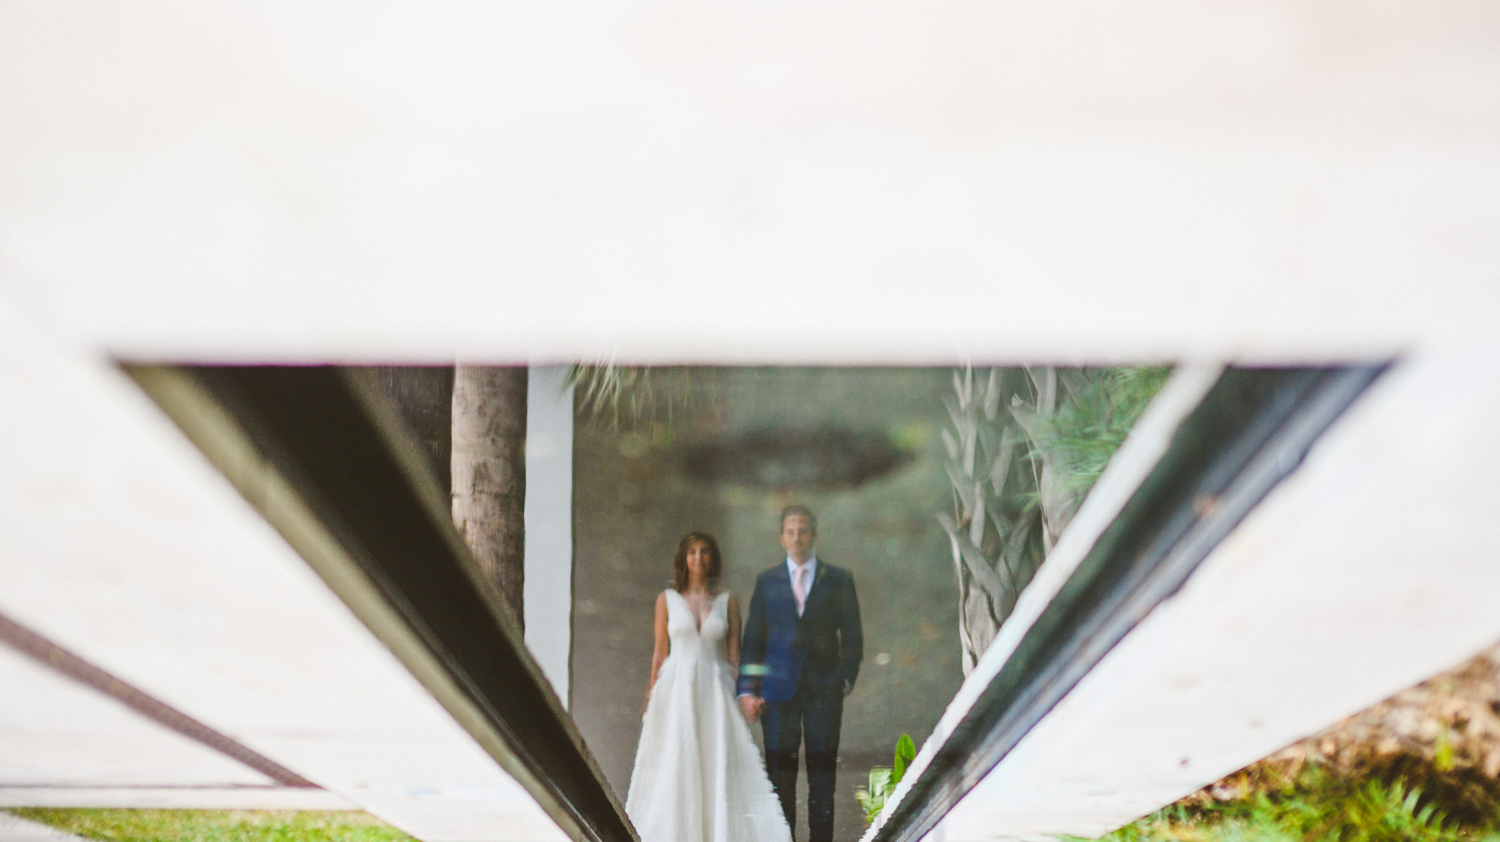 035 - creative portrait of bride and groom reflection in pool.jpg